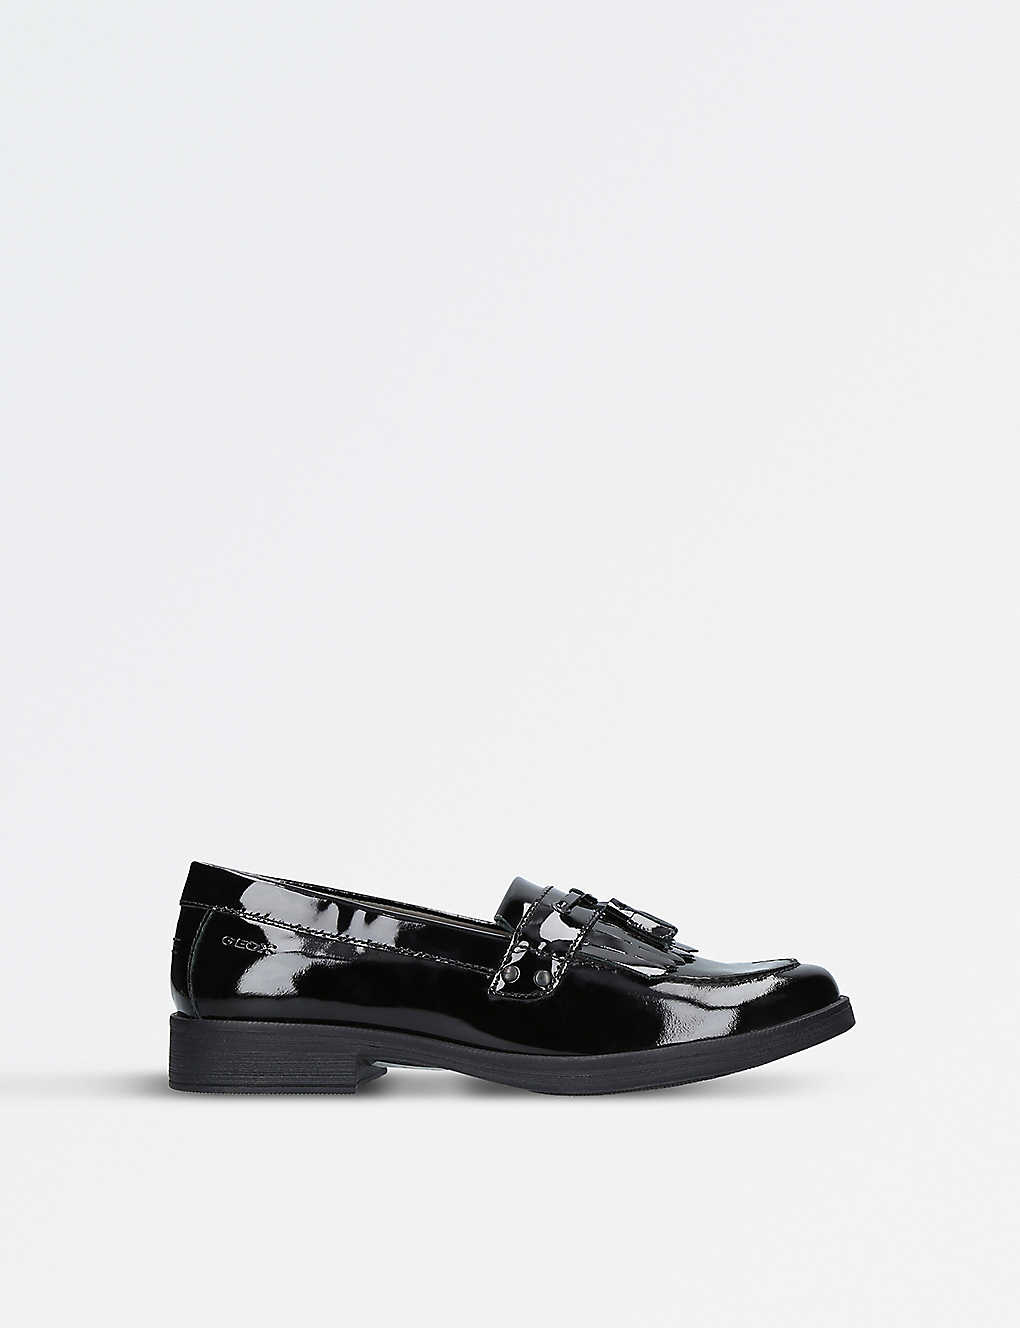 c76a547219c GEOX - Agata fringed patent leather loafers 9-11 years | Selfridges.com